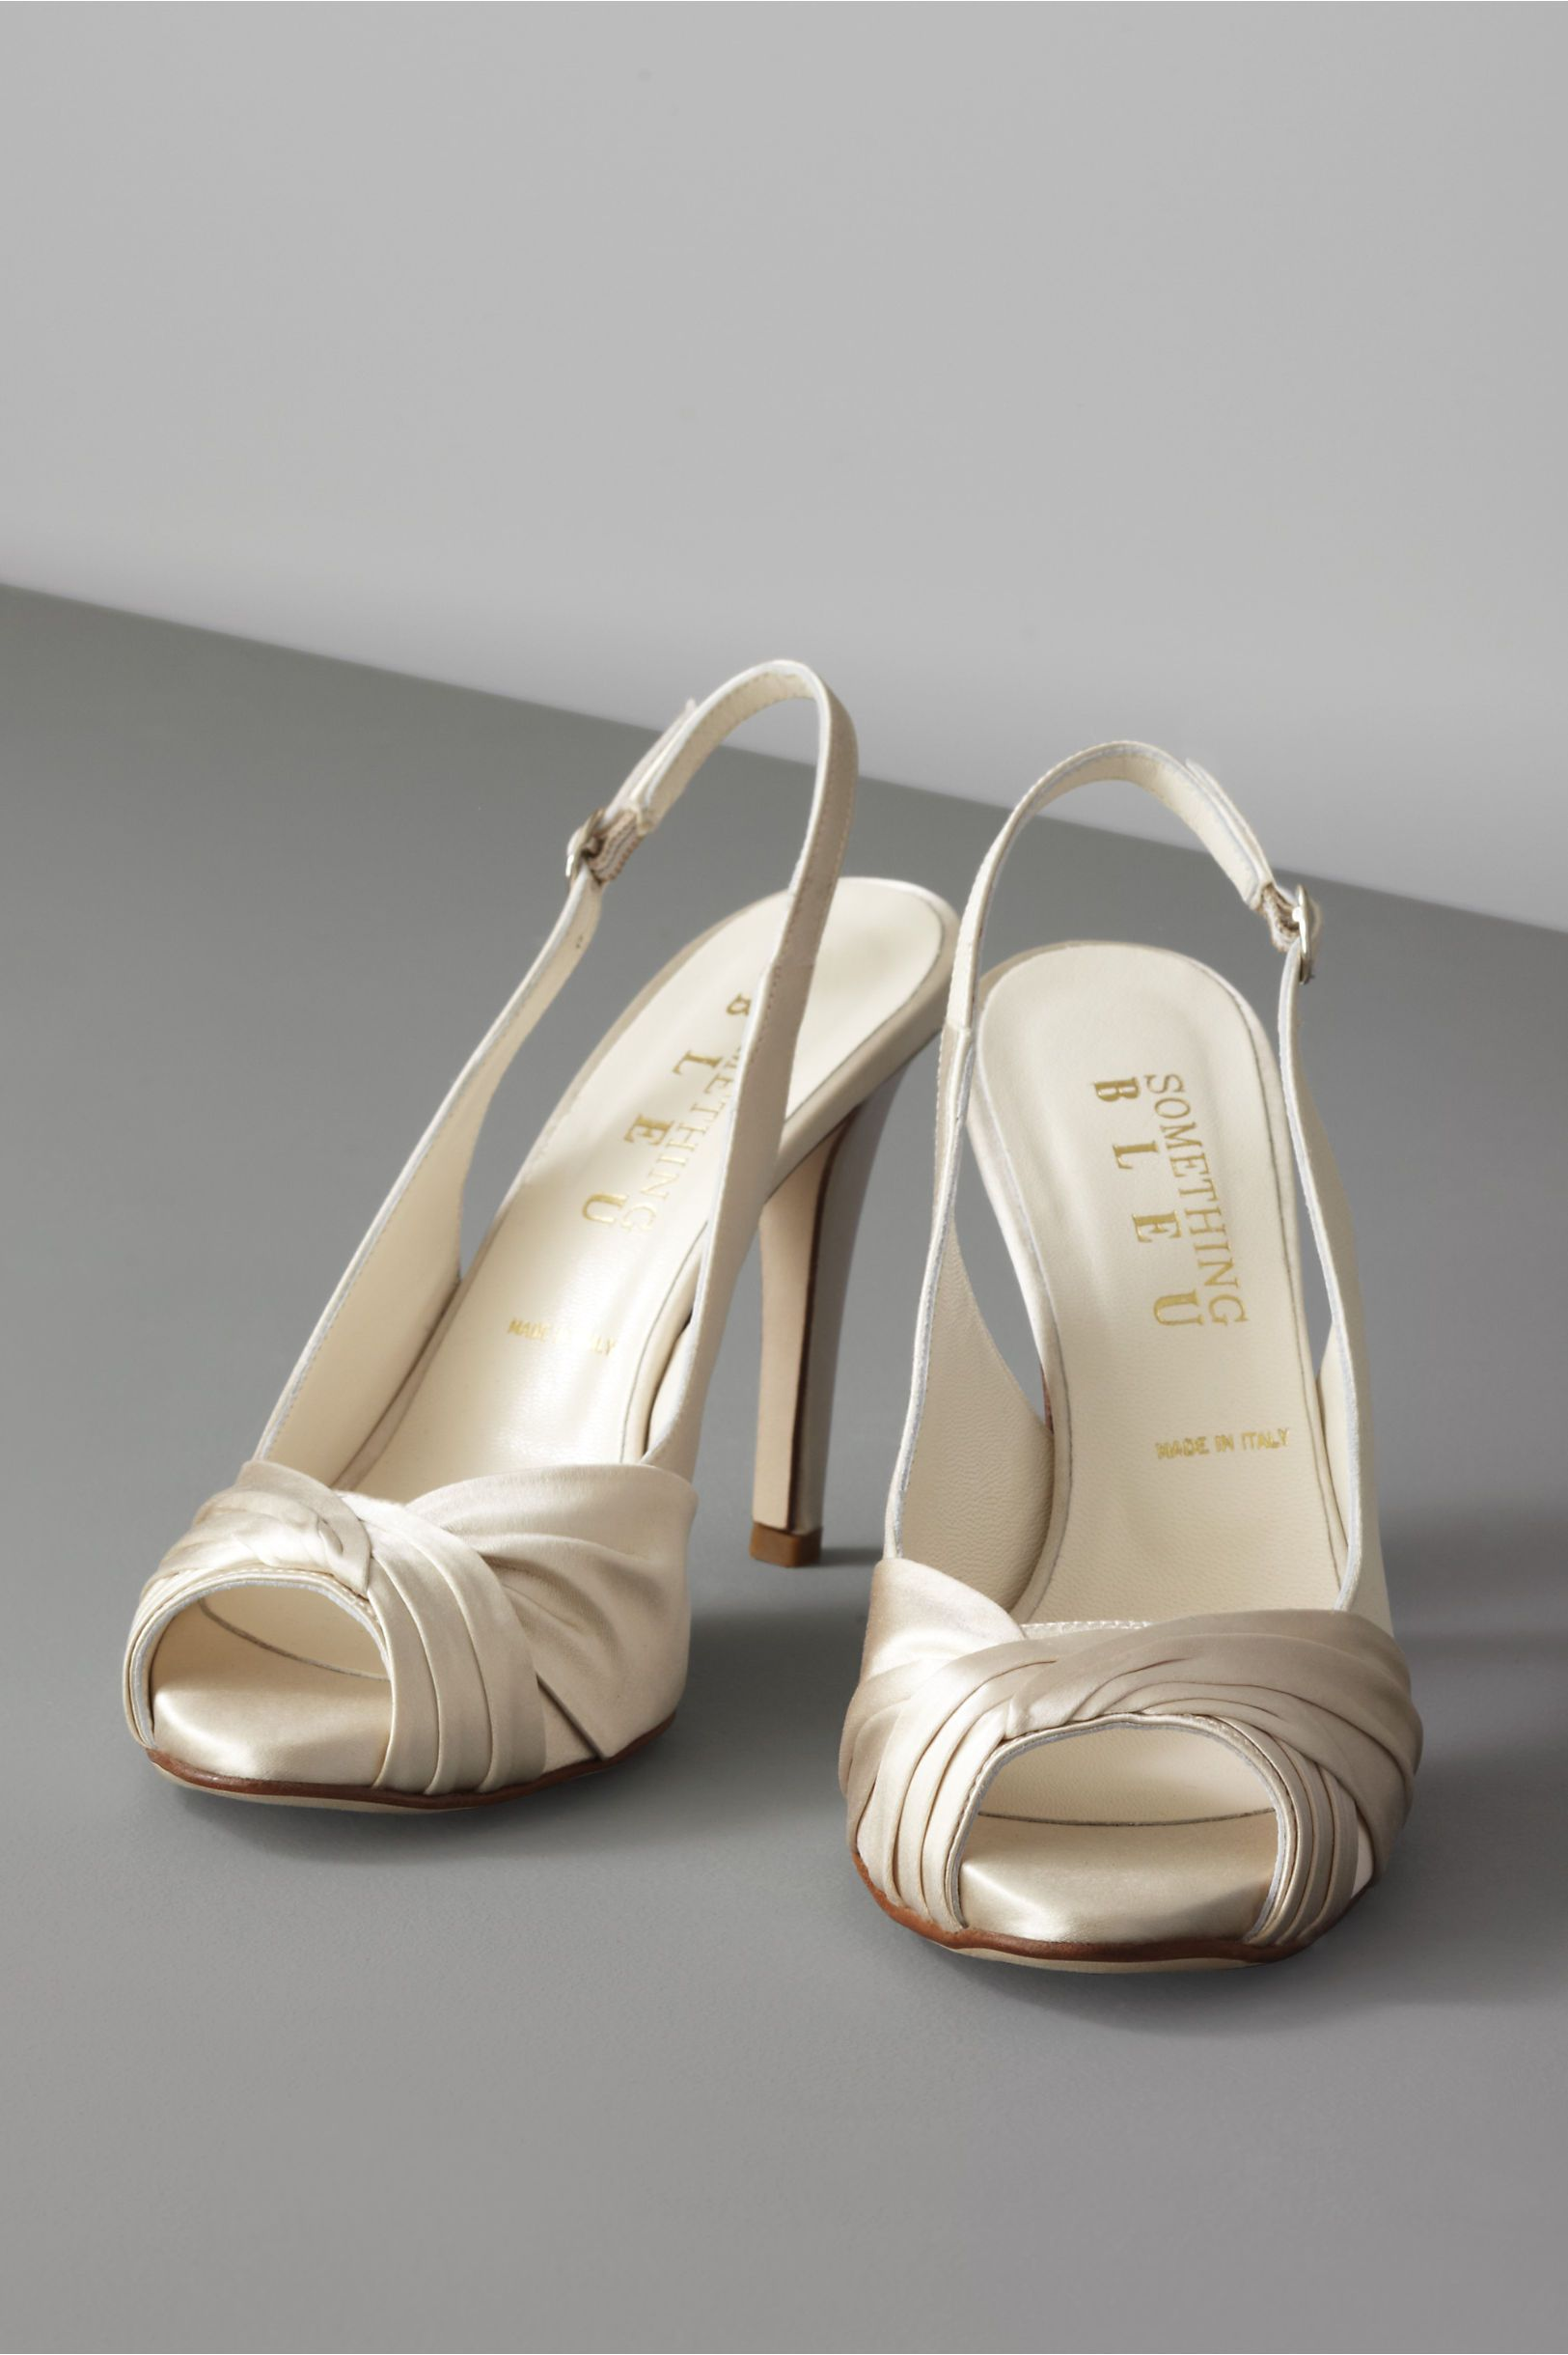 Making Seriously From Threshold Thinking About Bhldn Slingbacks I8qwwYz